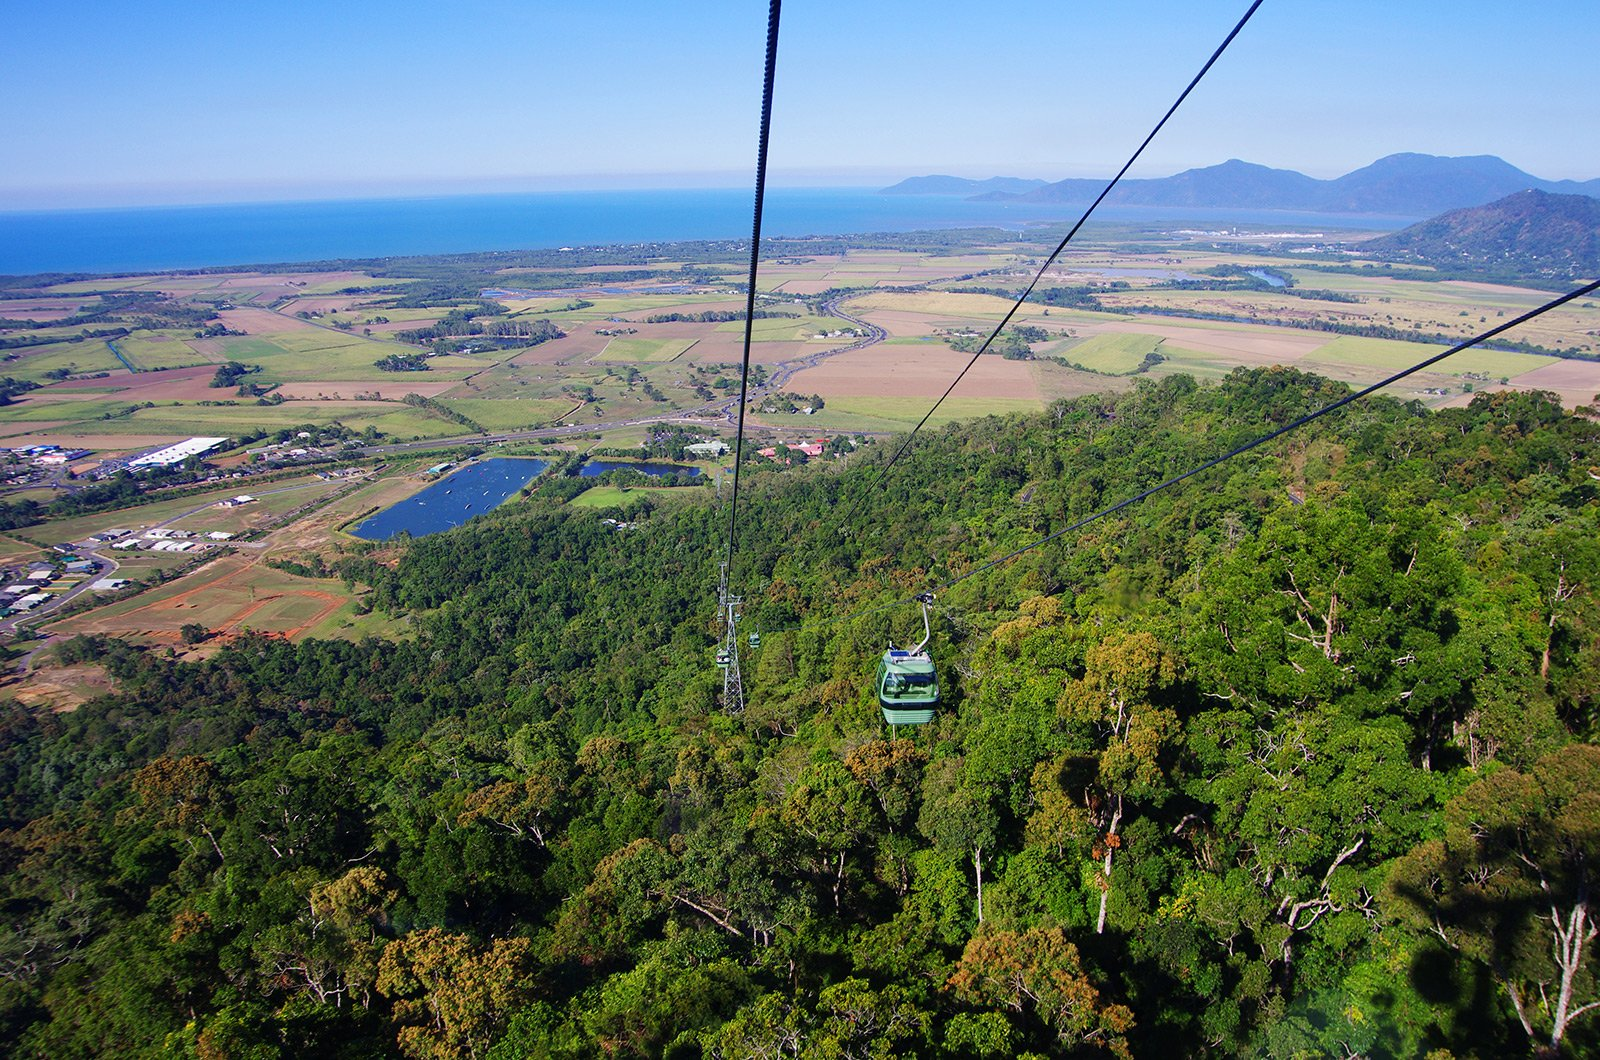 How to take a ride on the cableway over the tropical forest in Cairns